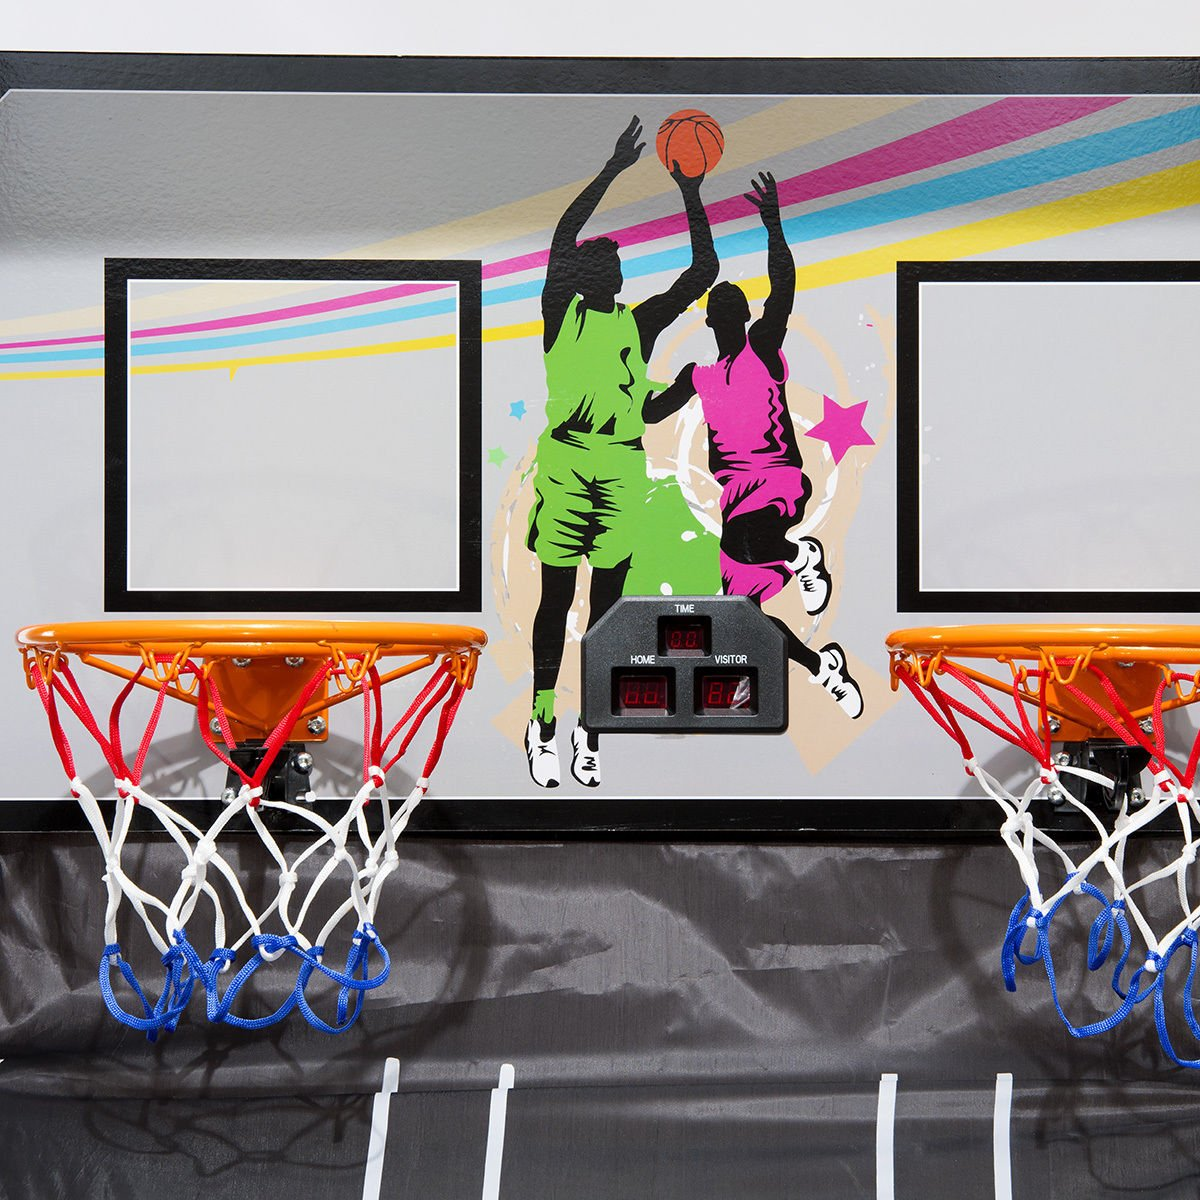 Eight24hours Indoor Basketball Arcade Game Double Electronic Hoops shot 2 Player 4 Balls + FREE E - Book by Eight24hours (Image #3)